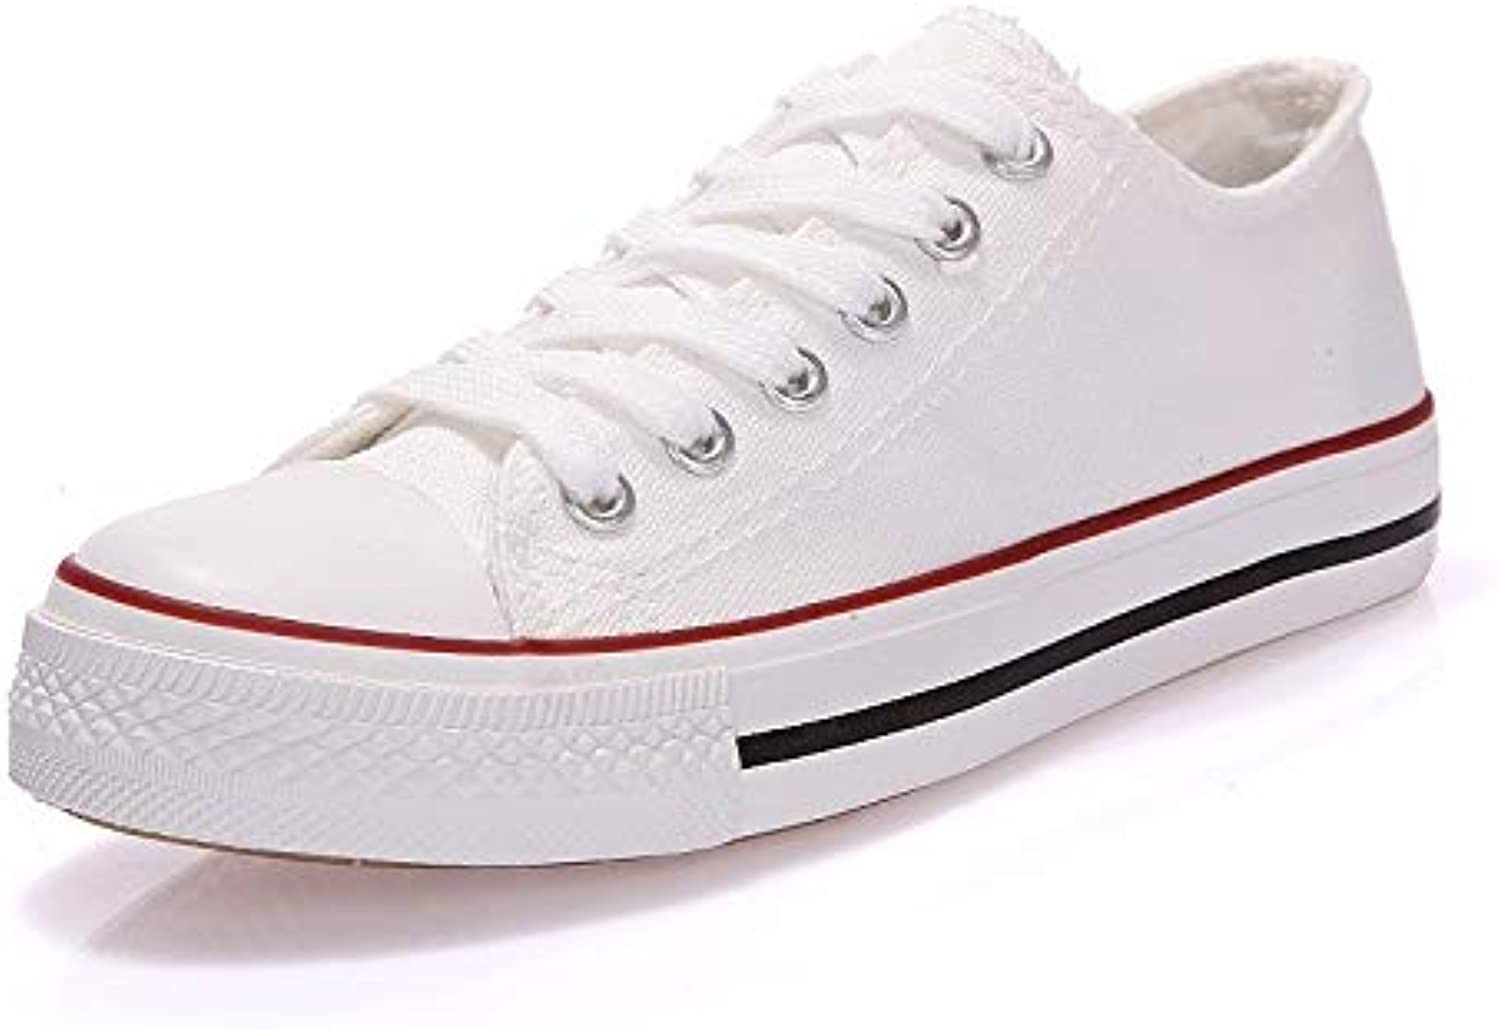 Women's shoes Canvas Spring Fall Comfort Sneakers Walking shoes Flat Heel Round Toe Black Red   bluee